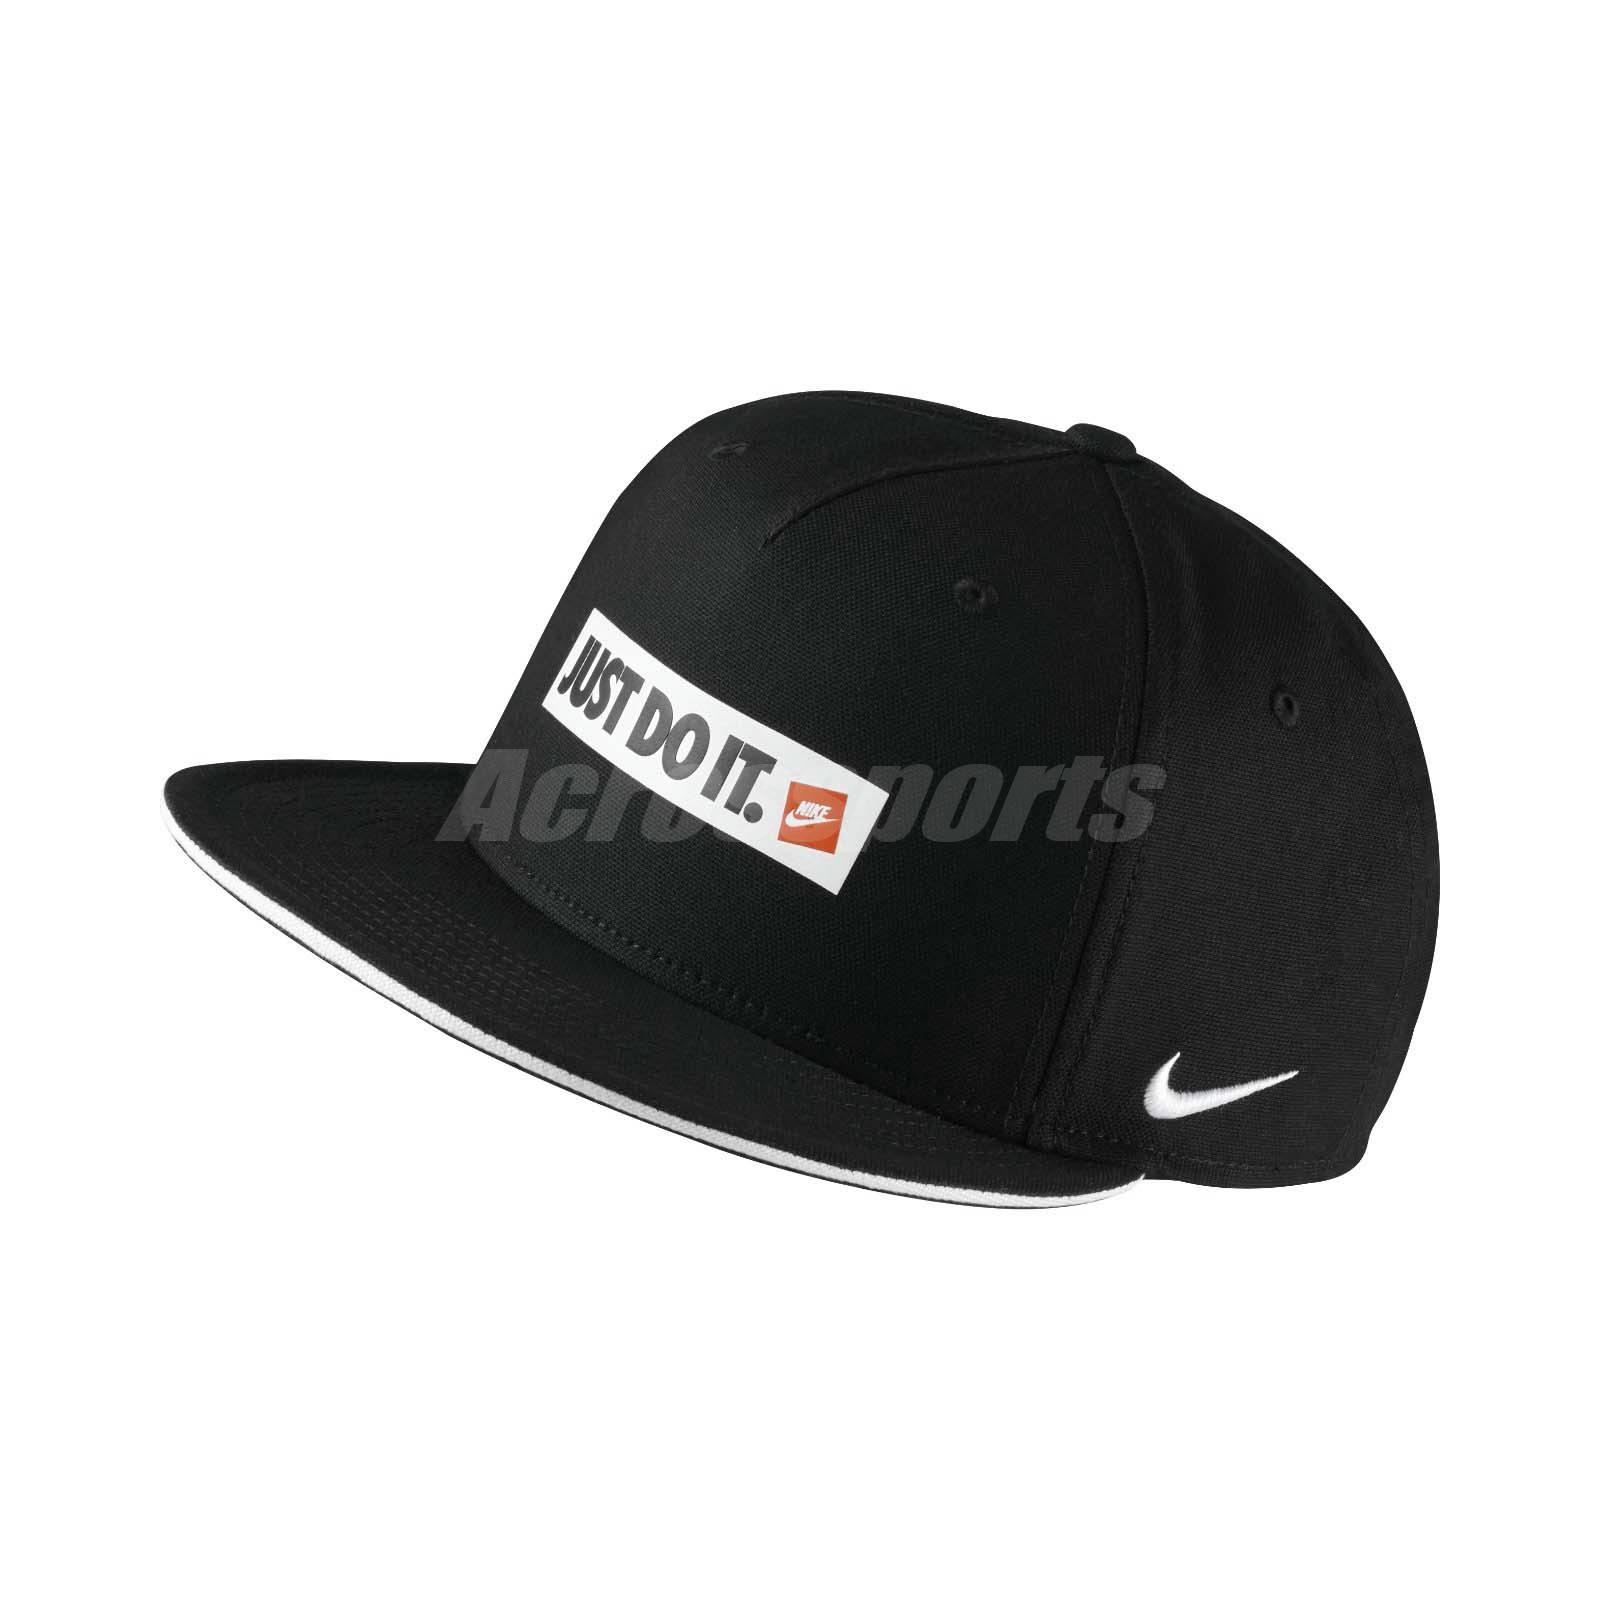 b9668f6163487 Details about Nike Unisex Sportswear TRUE CAP Swoosh Just Do It Black White  Hat 851645010